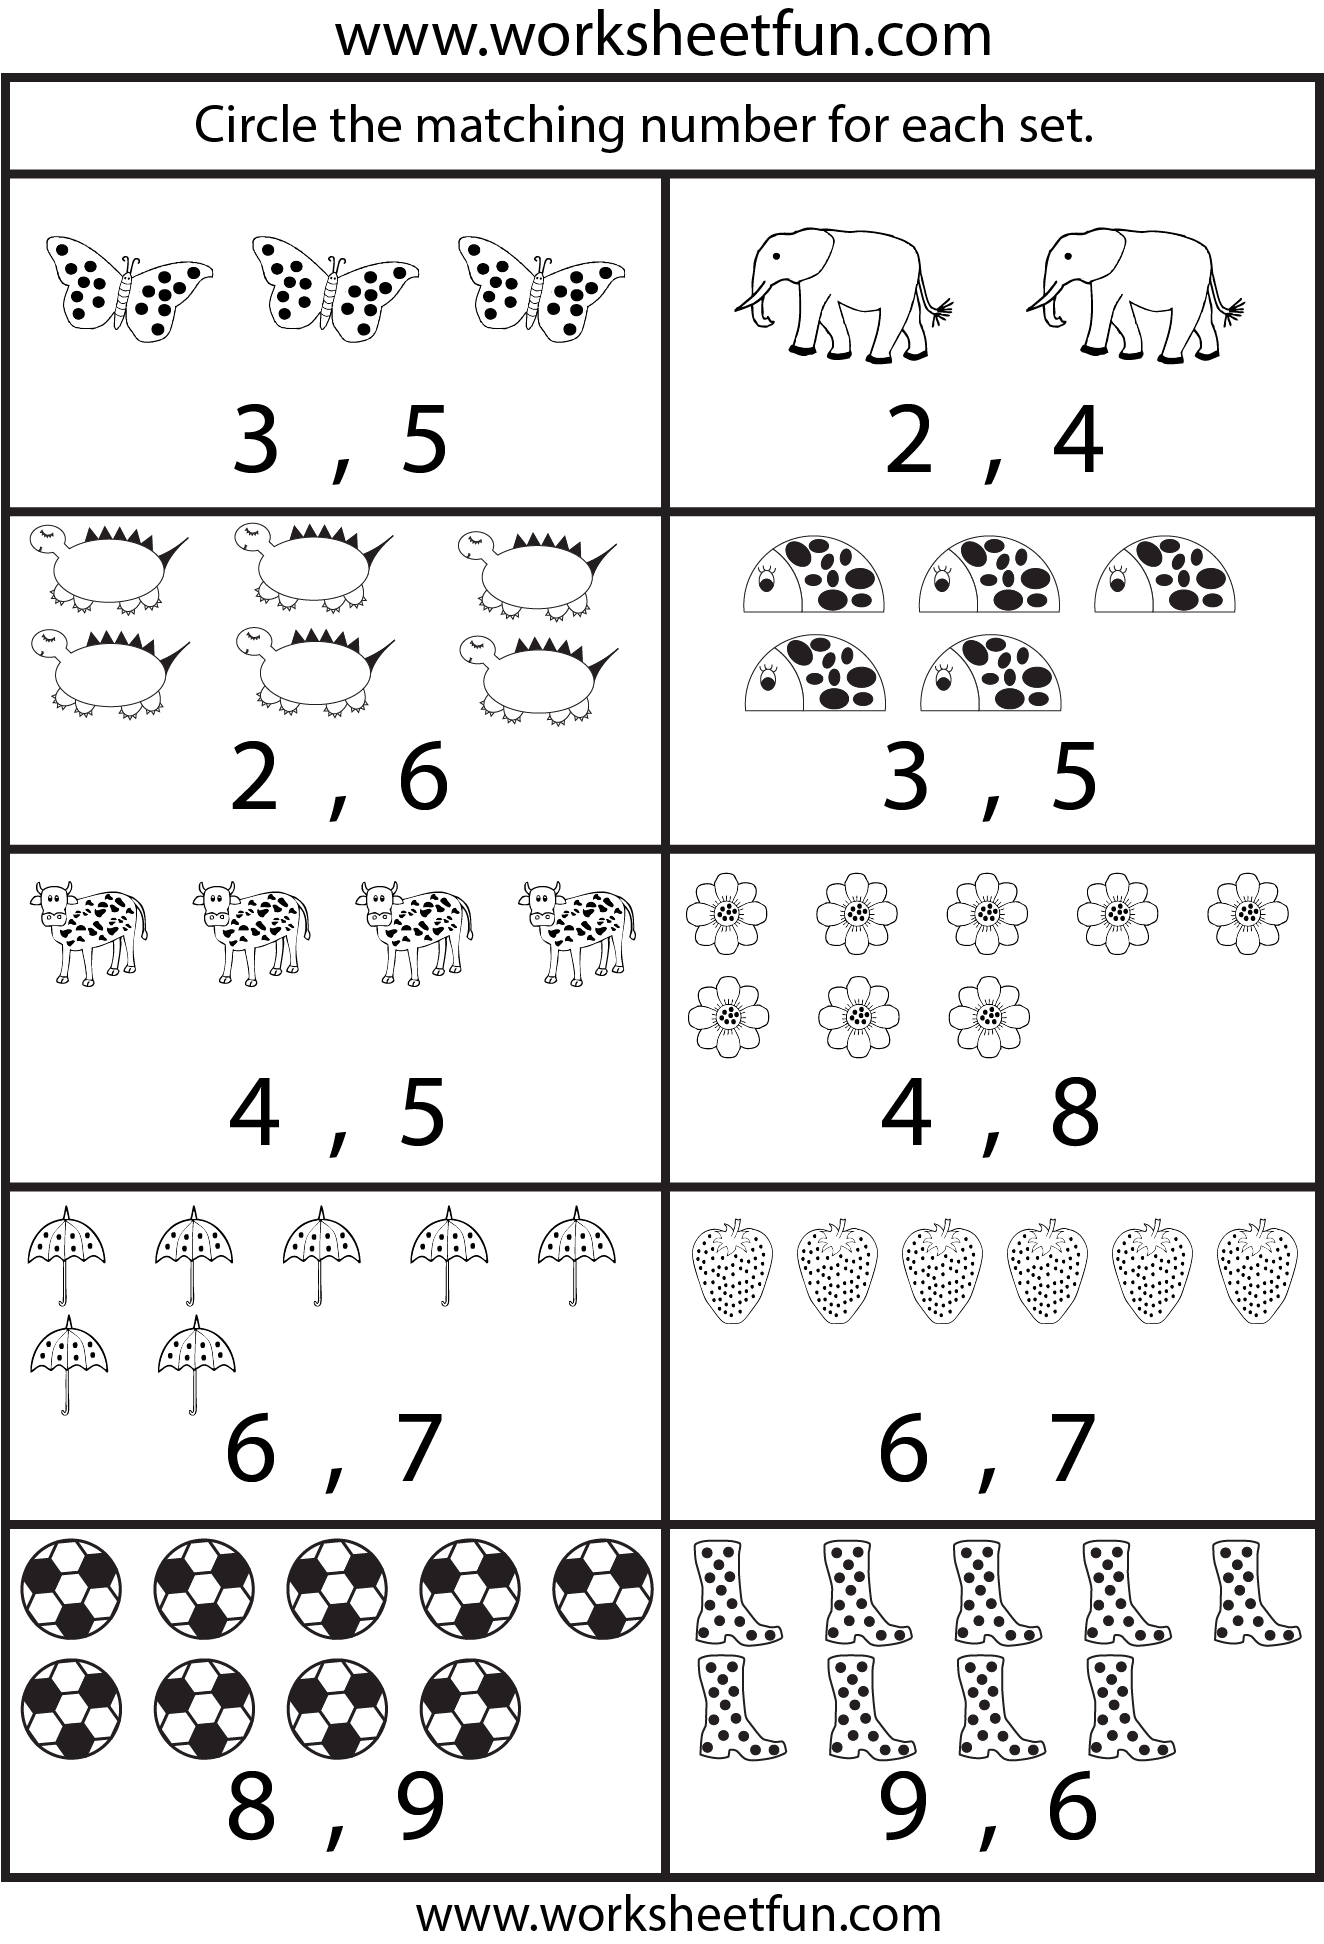 Worksheets Counting Worksheets 1-10 kindergarten worksheets free printable worksheetfun worksheetfun